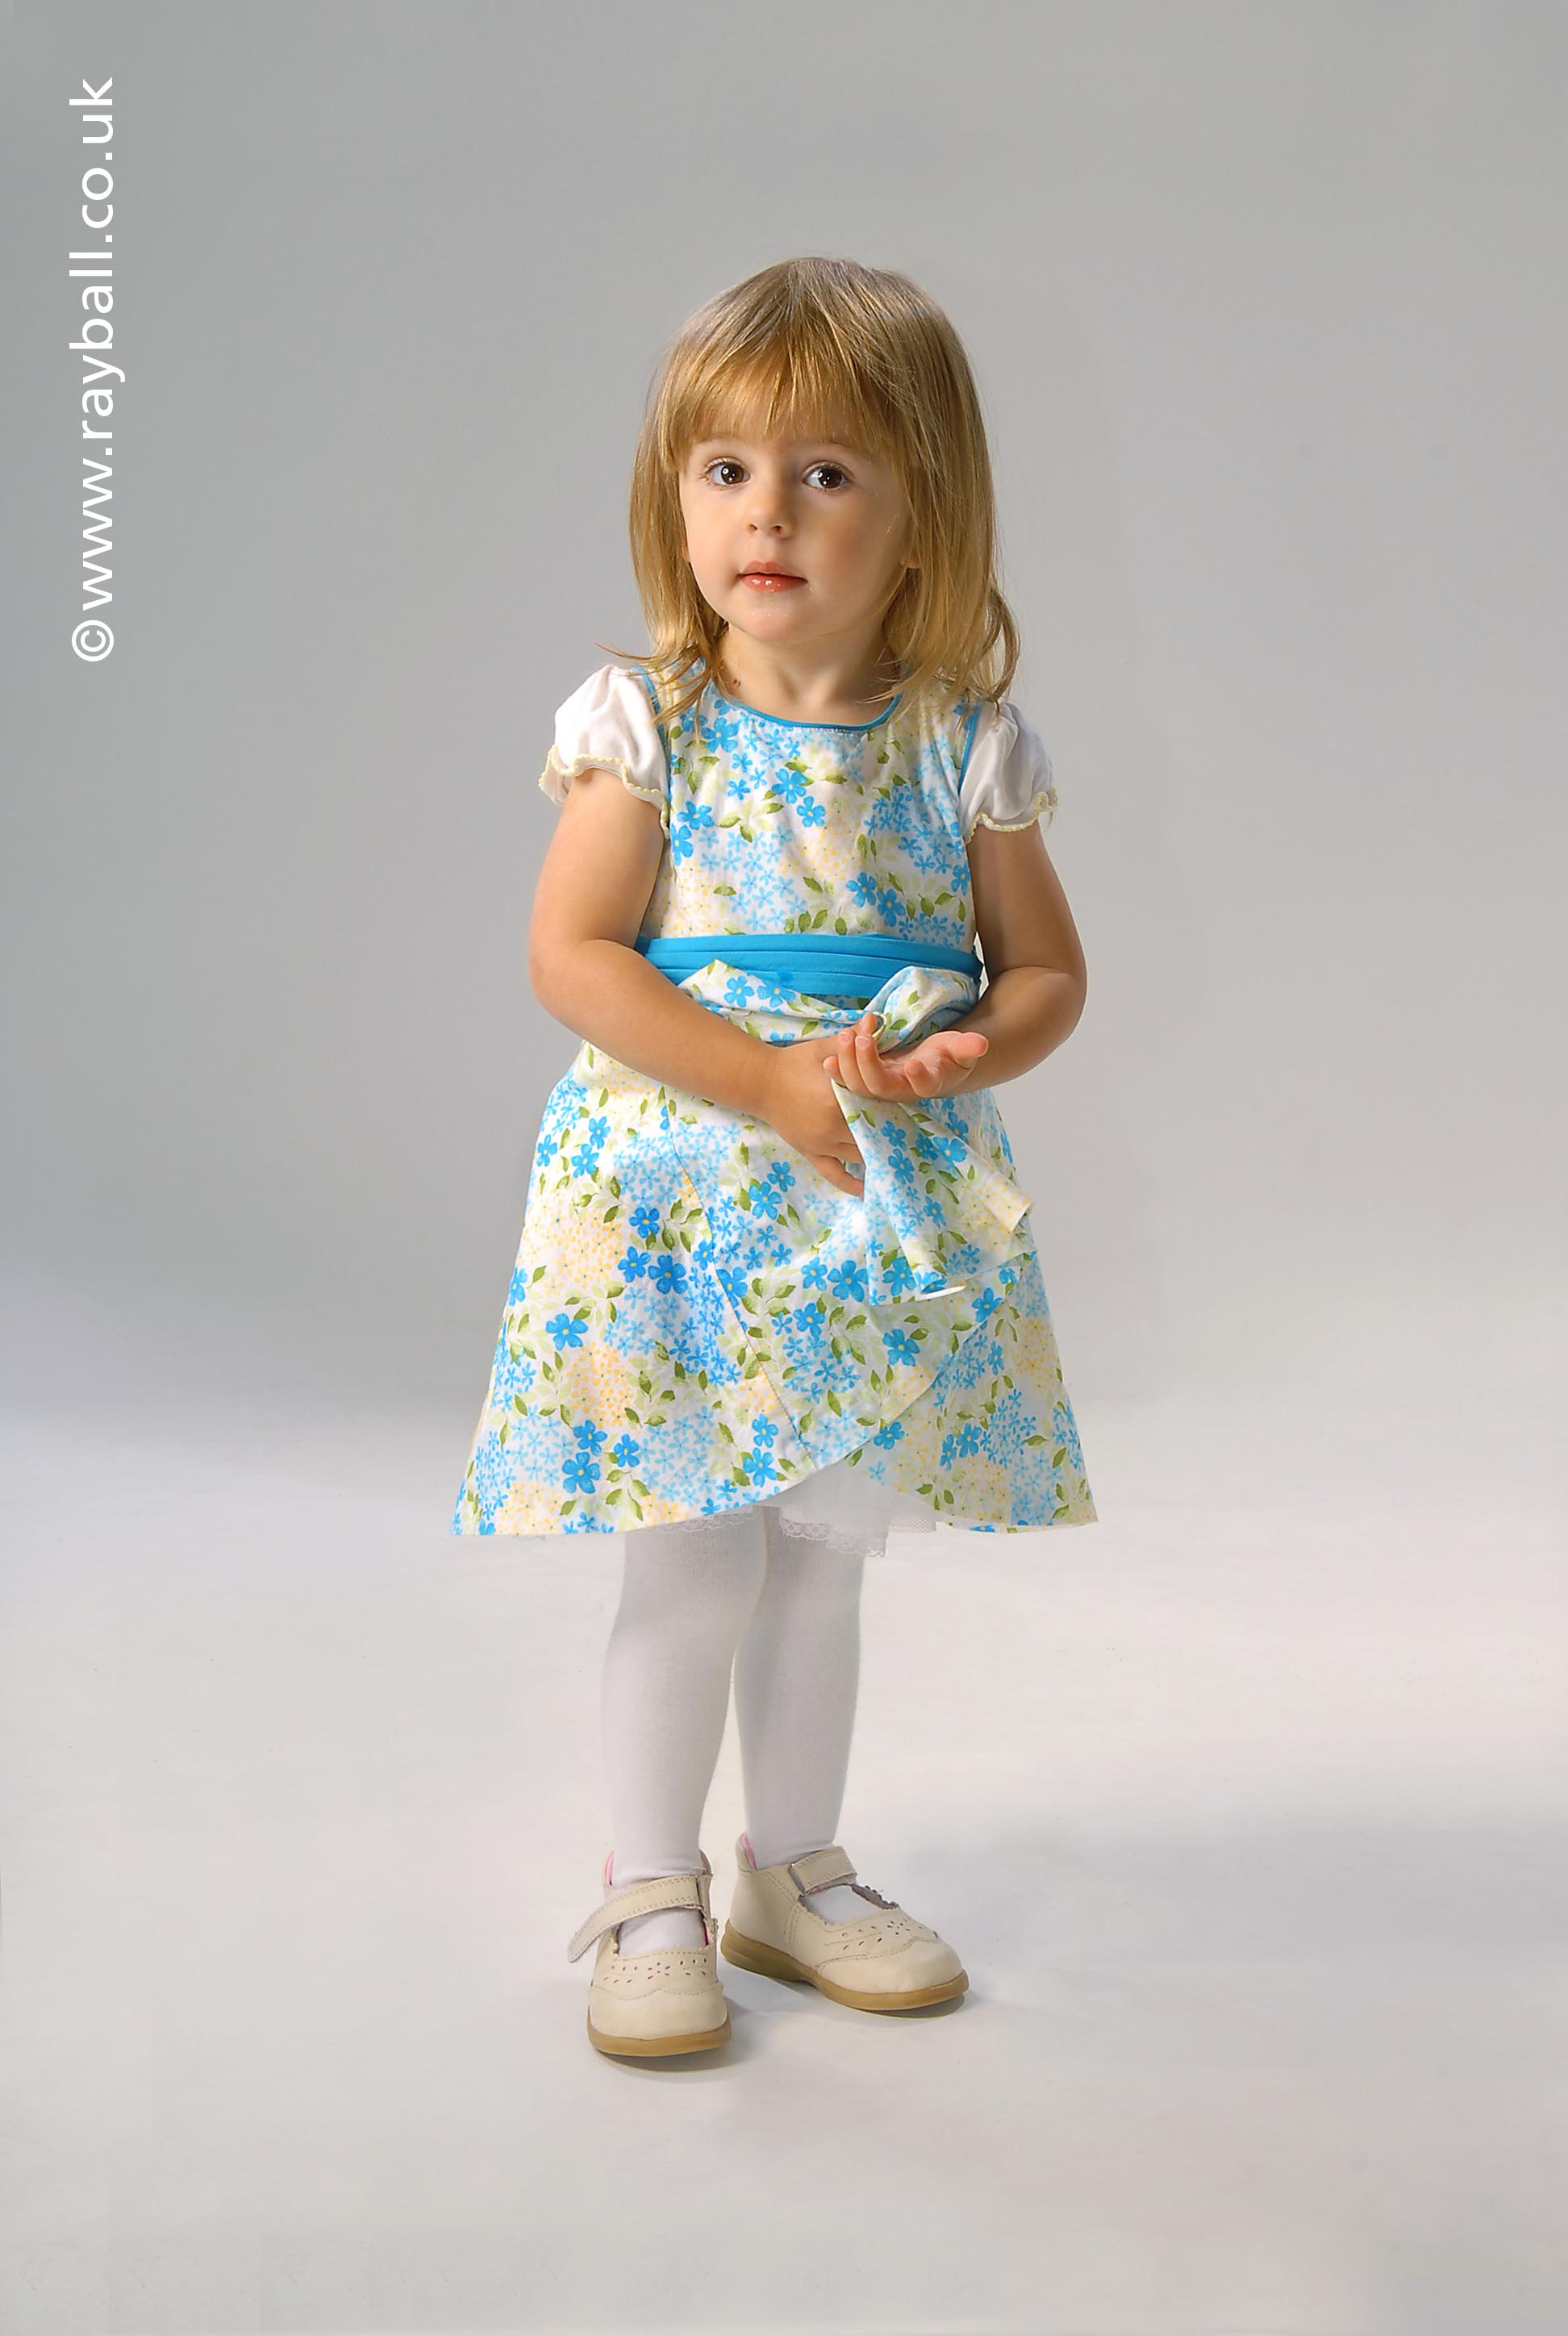 Beautiful little girl from Tadworth at Epsom Photography studio Surrey.